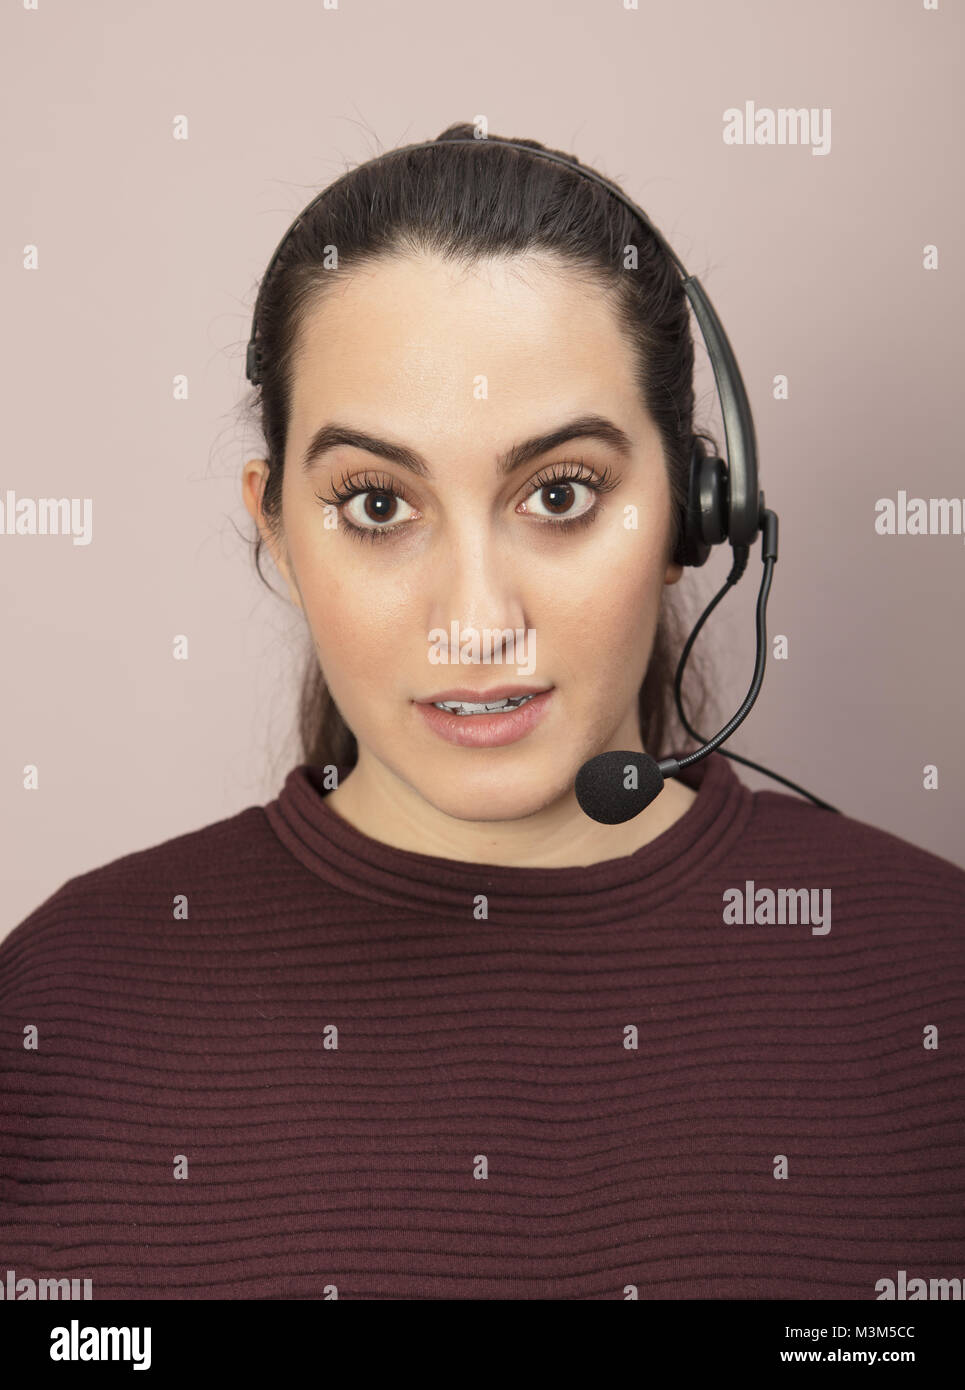 Call center operator with a surprised expression listening to a conversation on her headset and staring wide eyed Stock Photo